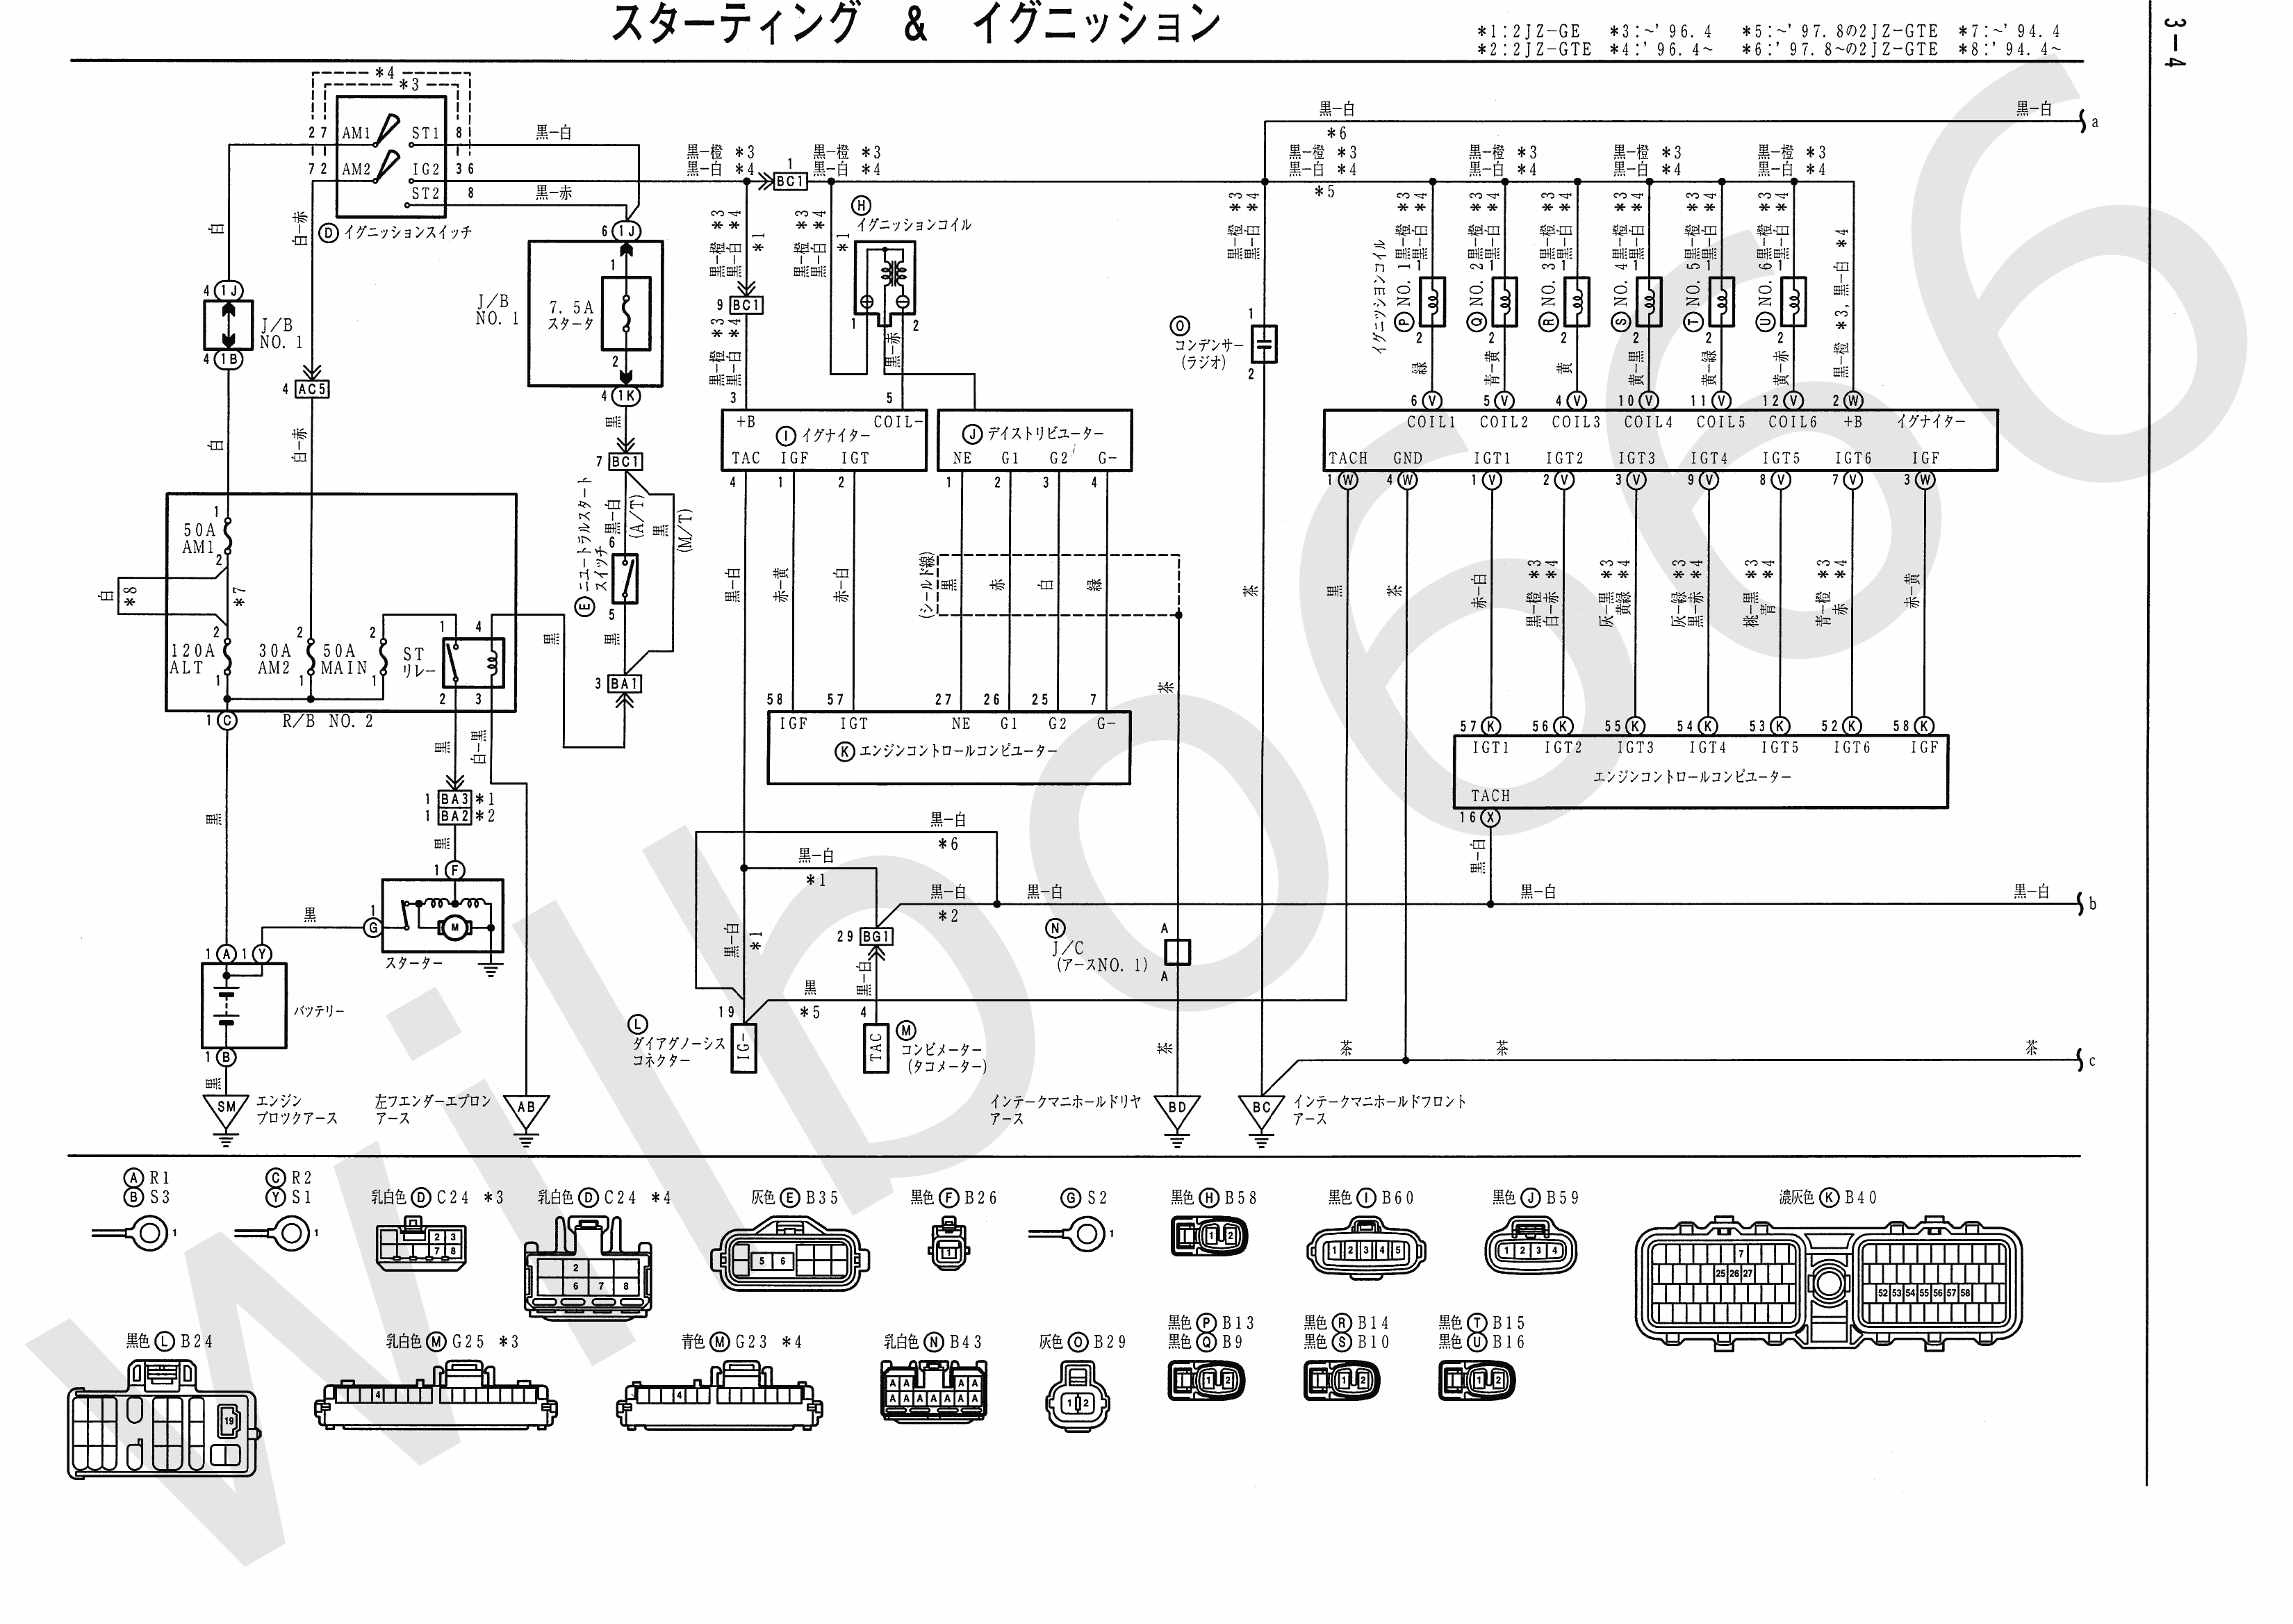 JZA80 Electrical Wiring Diagram 6742505 3 4 wilbo666 2jz ge jza80 supra engine wiring ge wiring diagrams at virtualis.co